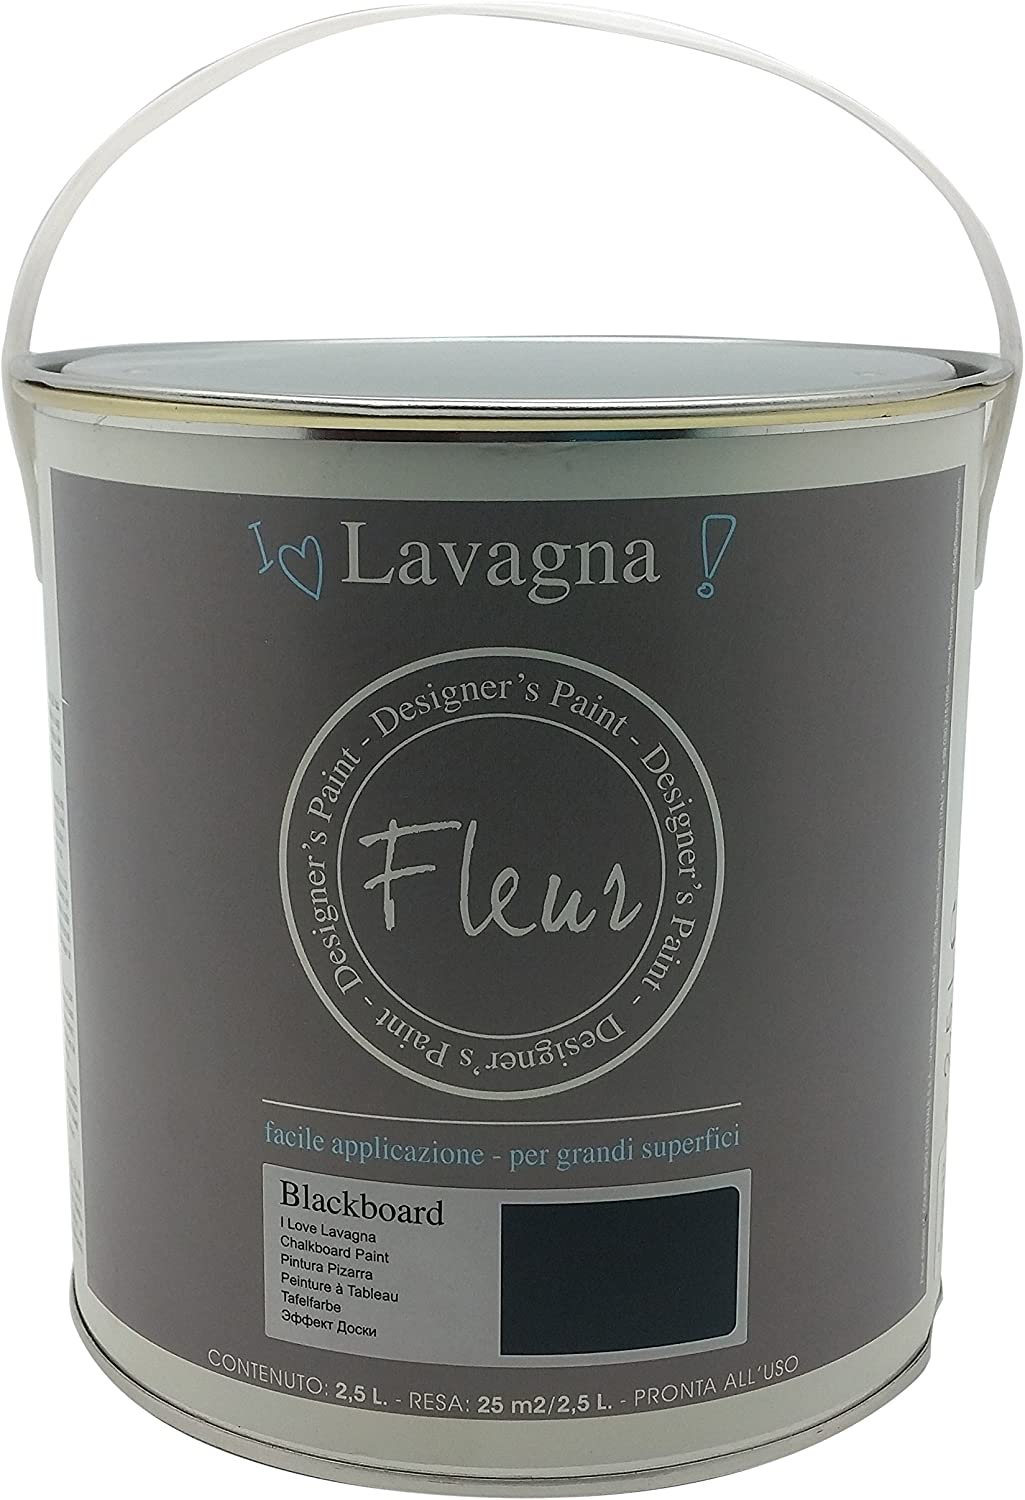 Fleur Paint 13250 - Pintura (transforma superficies en pizarra, 2,5 l) color blackboard: Amazon.es: Bricolaje y herramientas